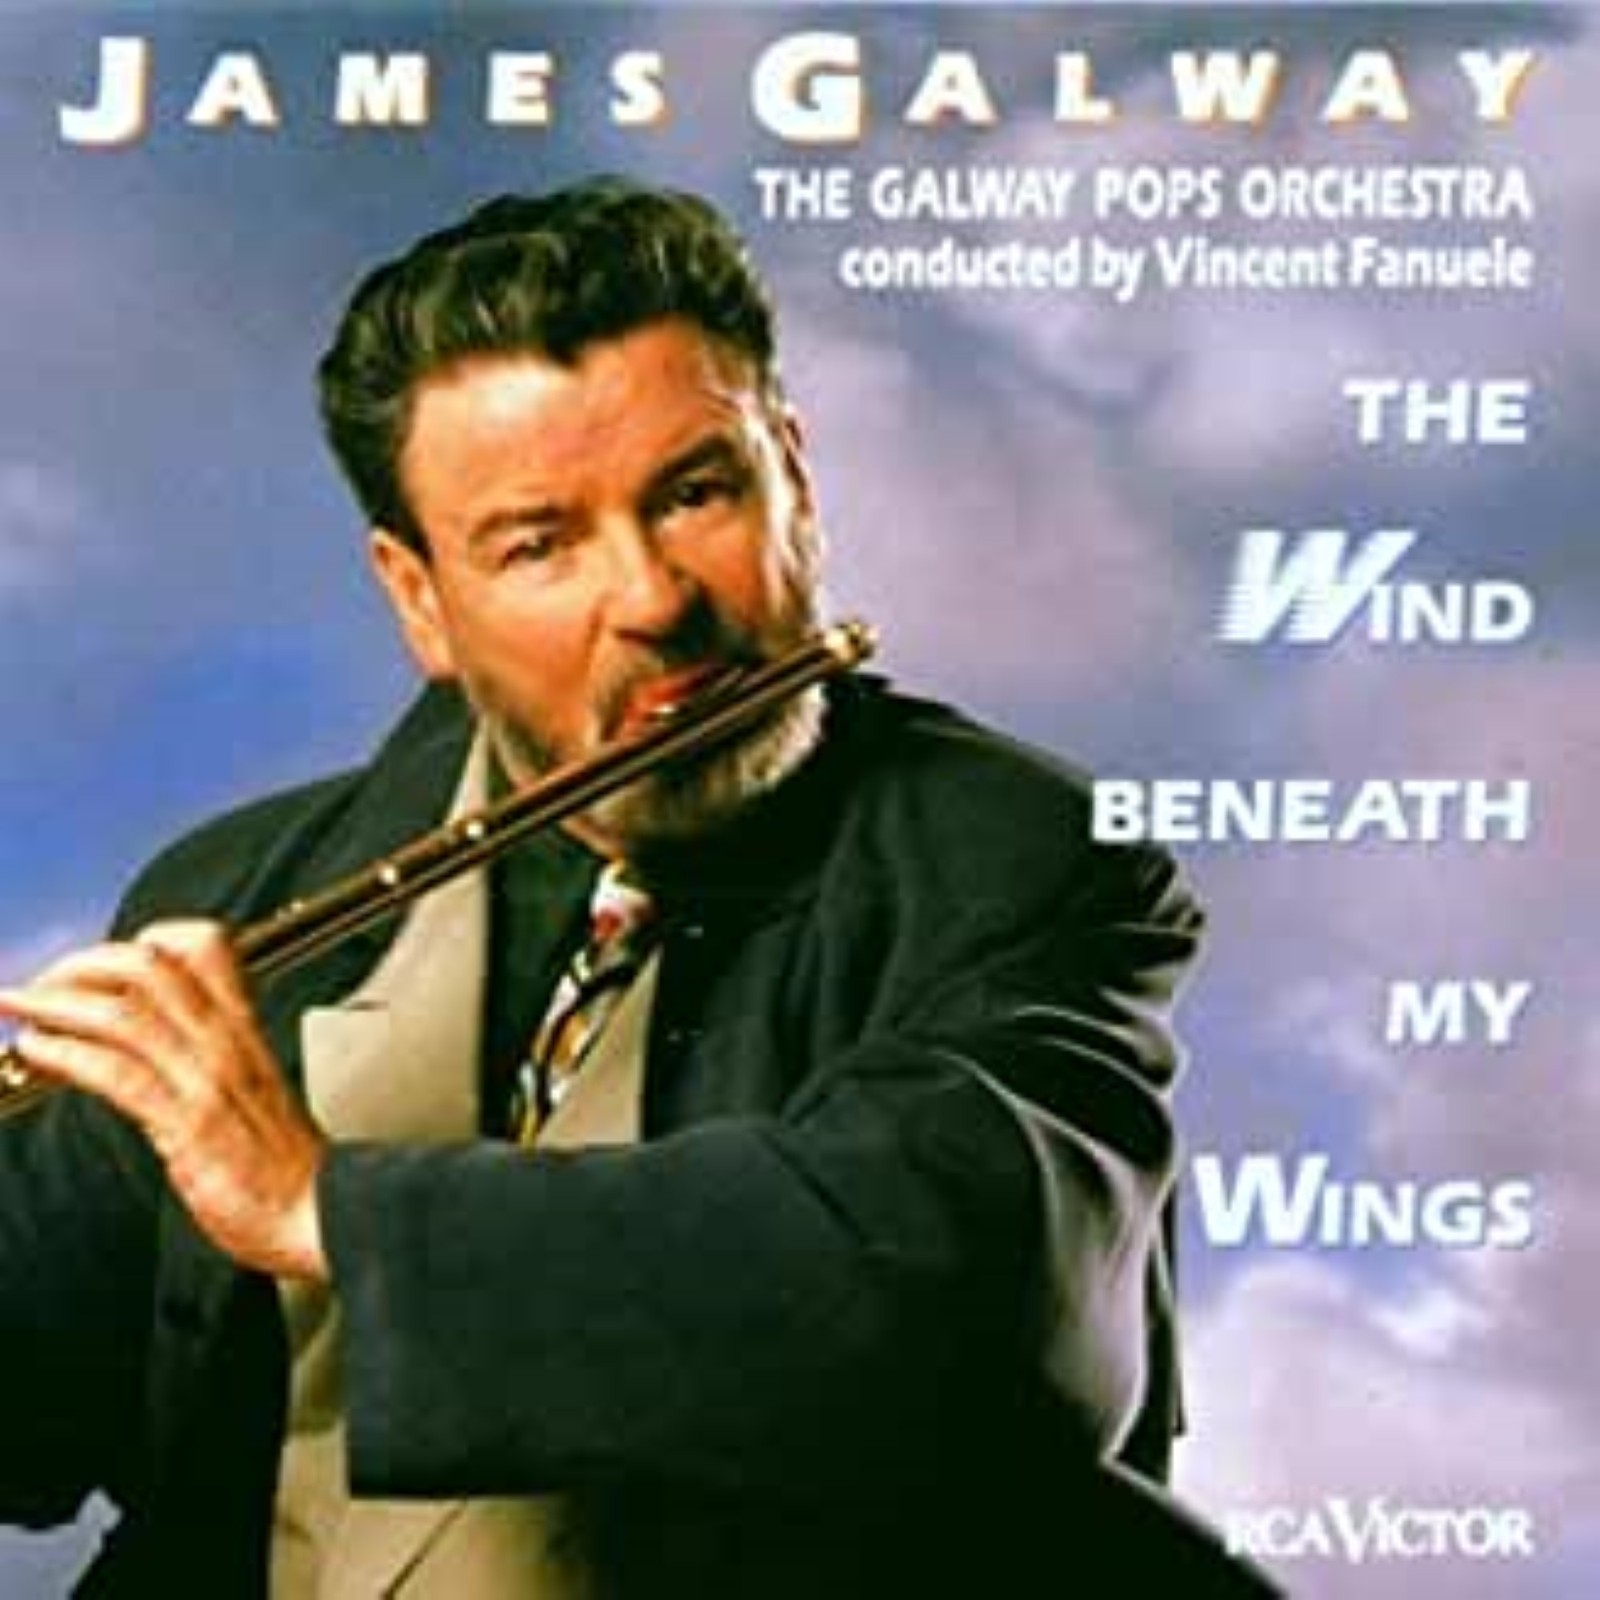 The Wind Beneath My Wings by James Galaway Cd